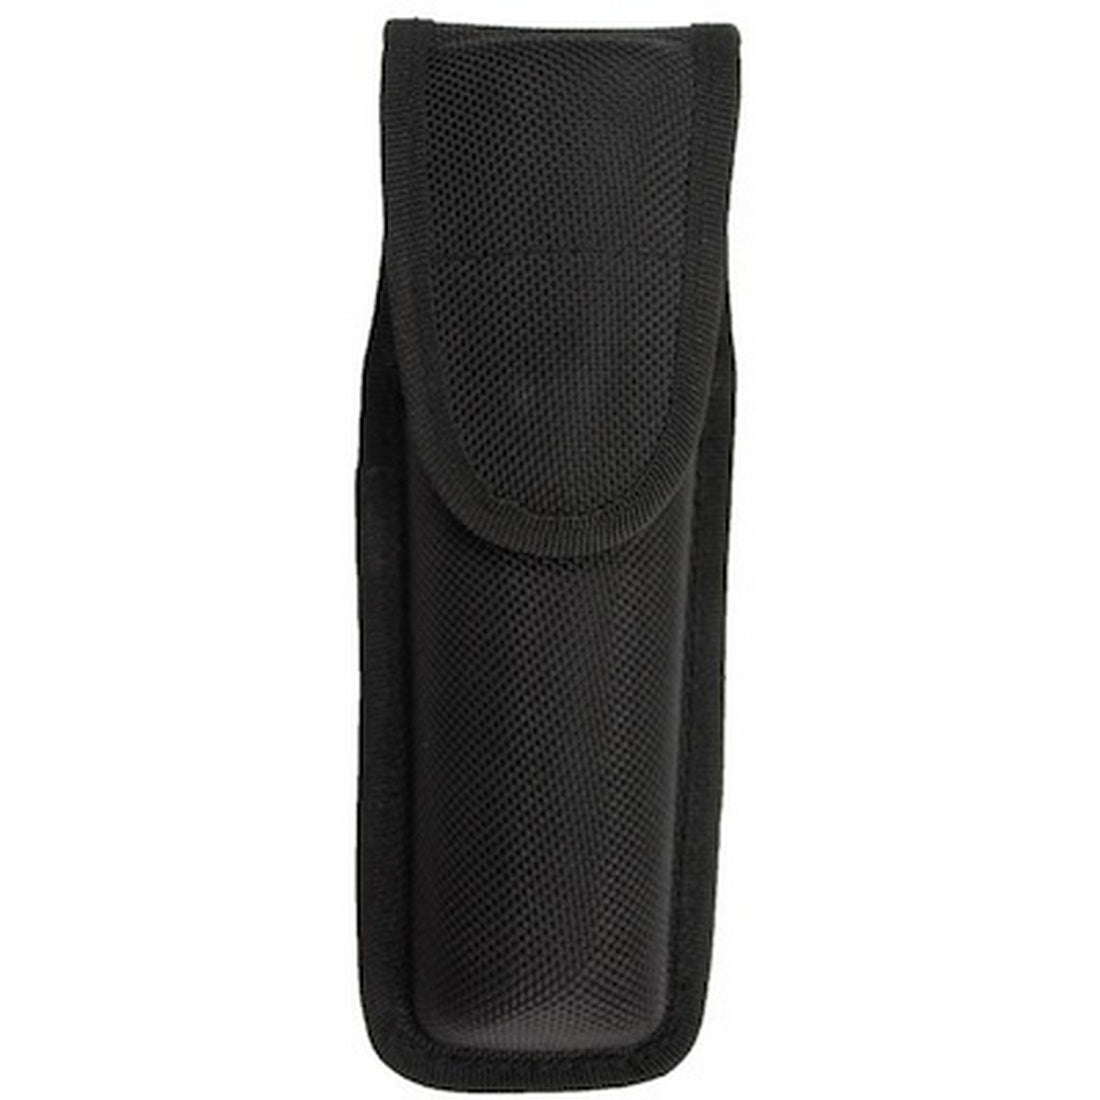 Tact Squad TG008 Mini AA Flashlight Pouch